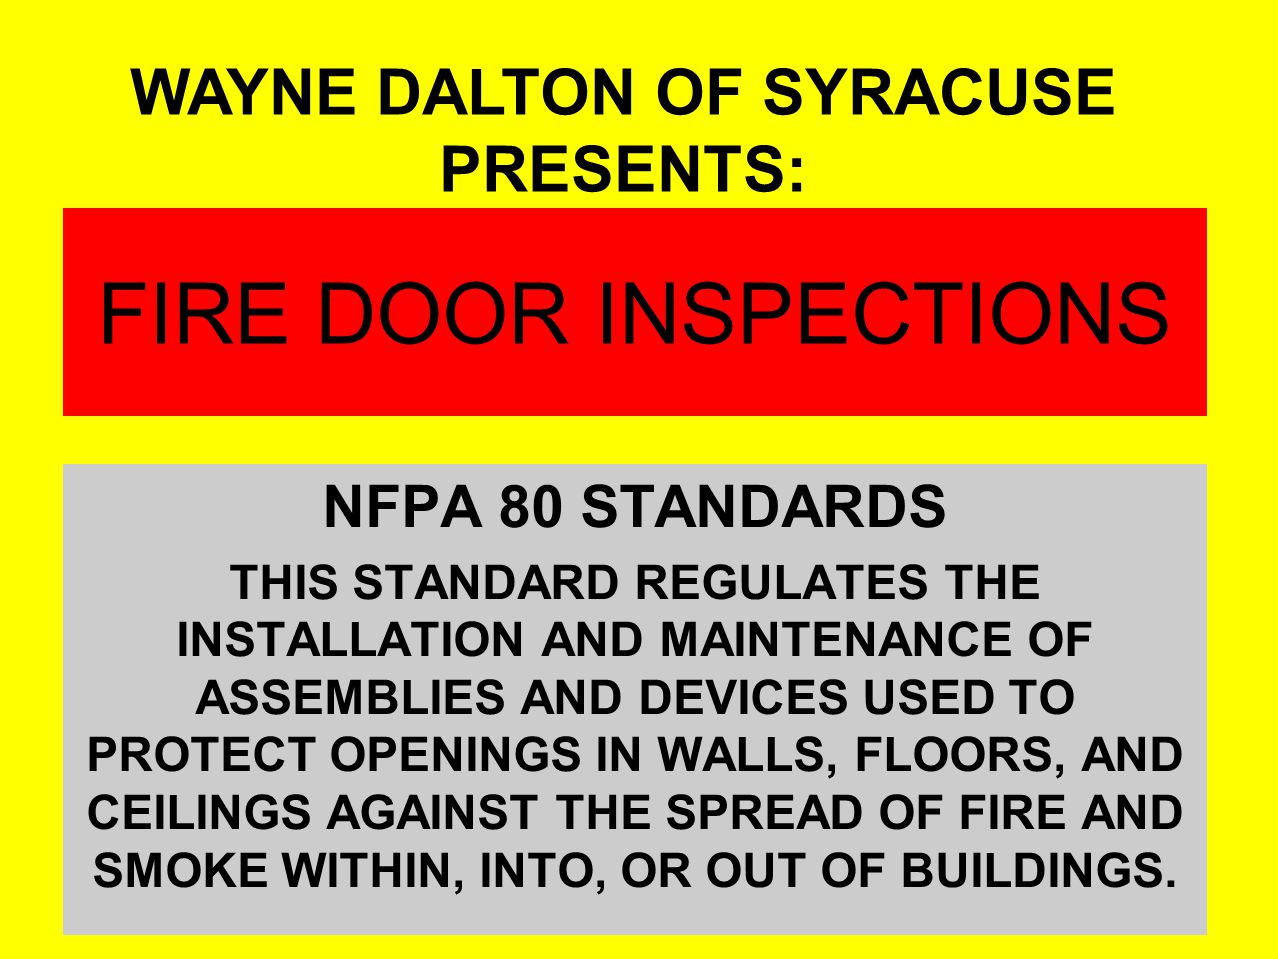 FIRE DOOR INSPECTIONS NFPA 80 STANDARDS THIS STANDARD REGULATES THE INSTALLATION AND MAINTENANCE OF ASSEMBLIES AND DEVICES USED TO PROTECT OPENINGS IN